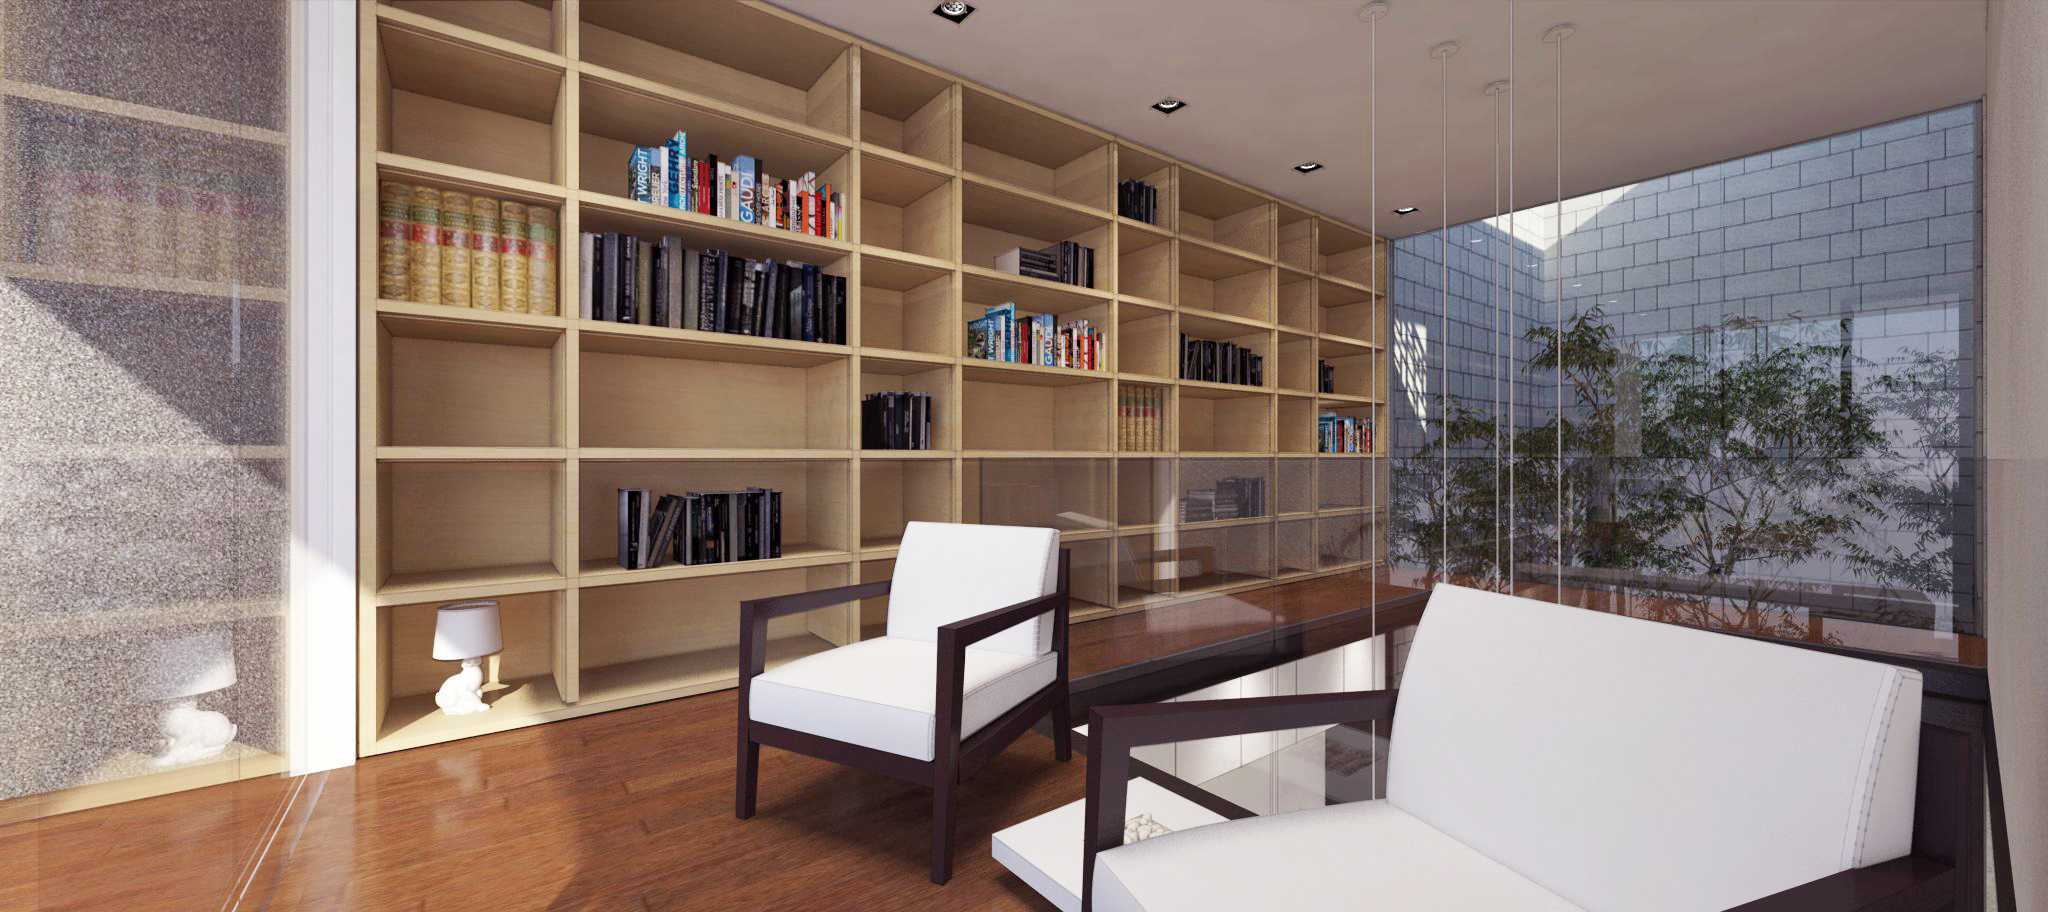 Ari Wibowo Design (Aw.d) Rk House Jakarta, Indonesia - Reading Room Modern  14522